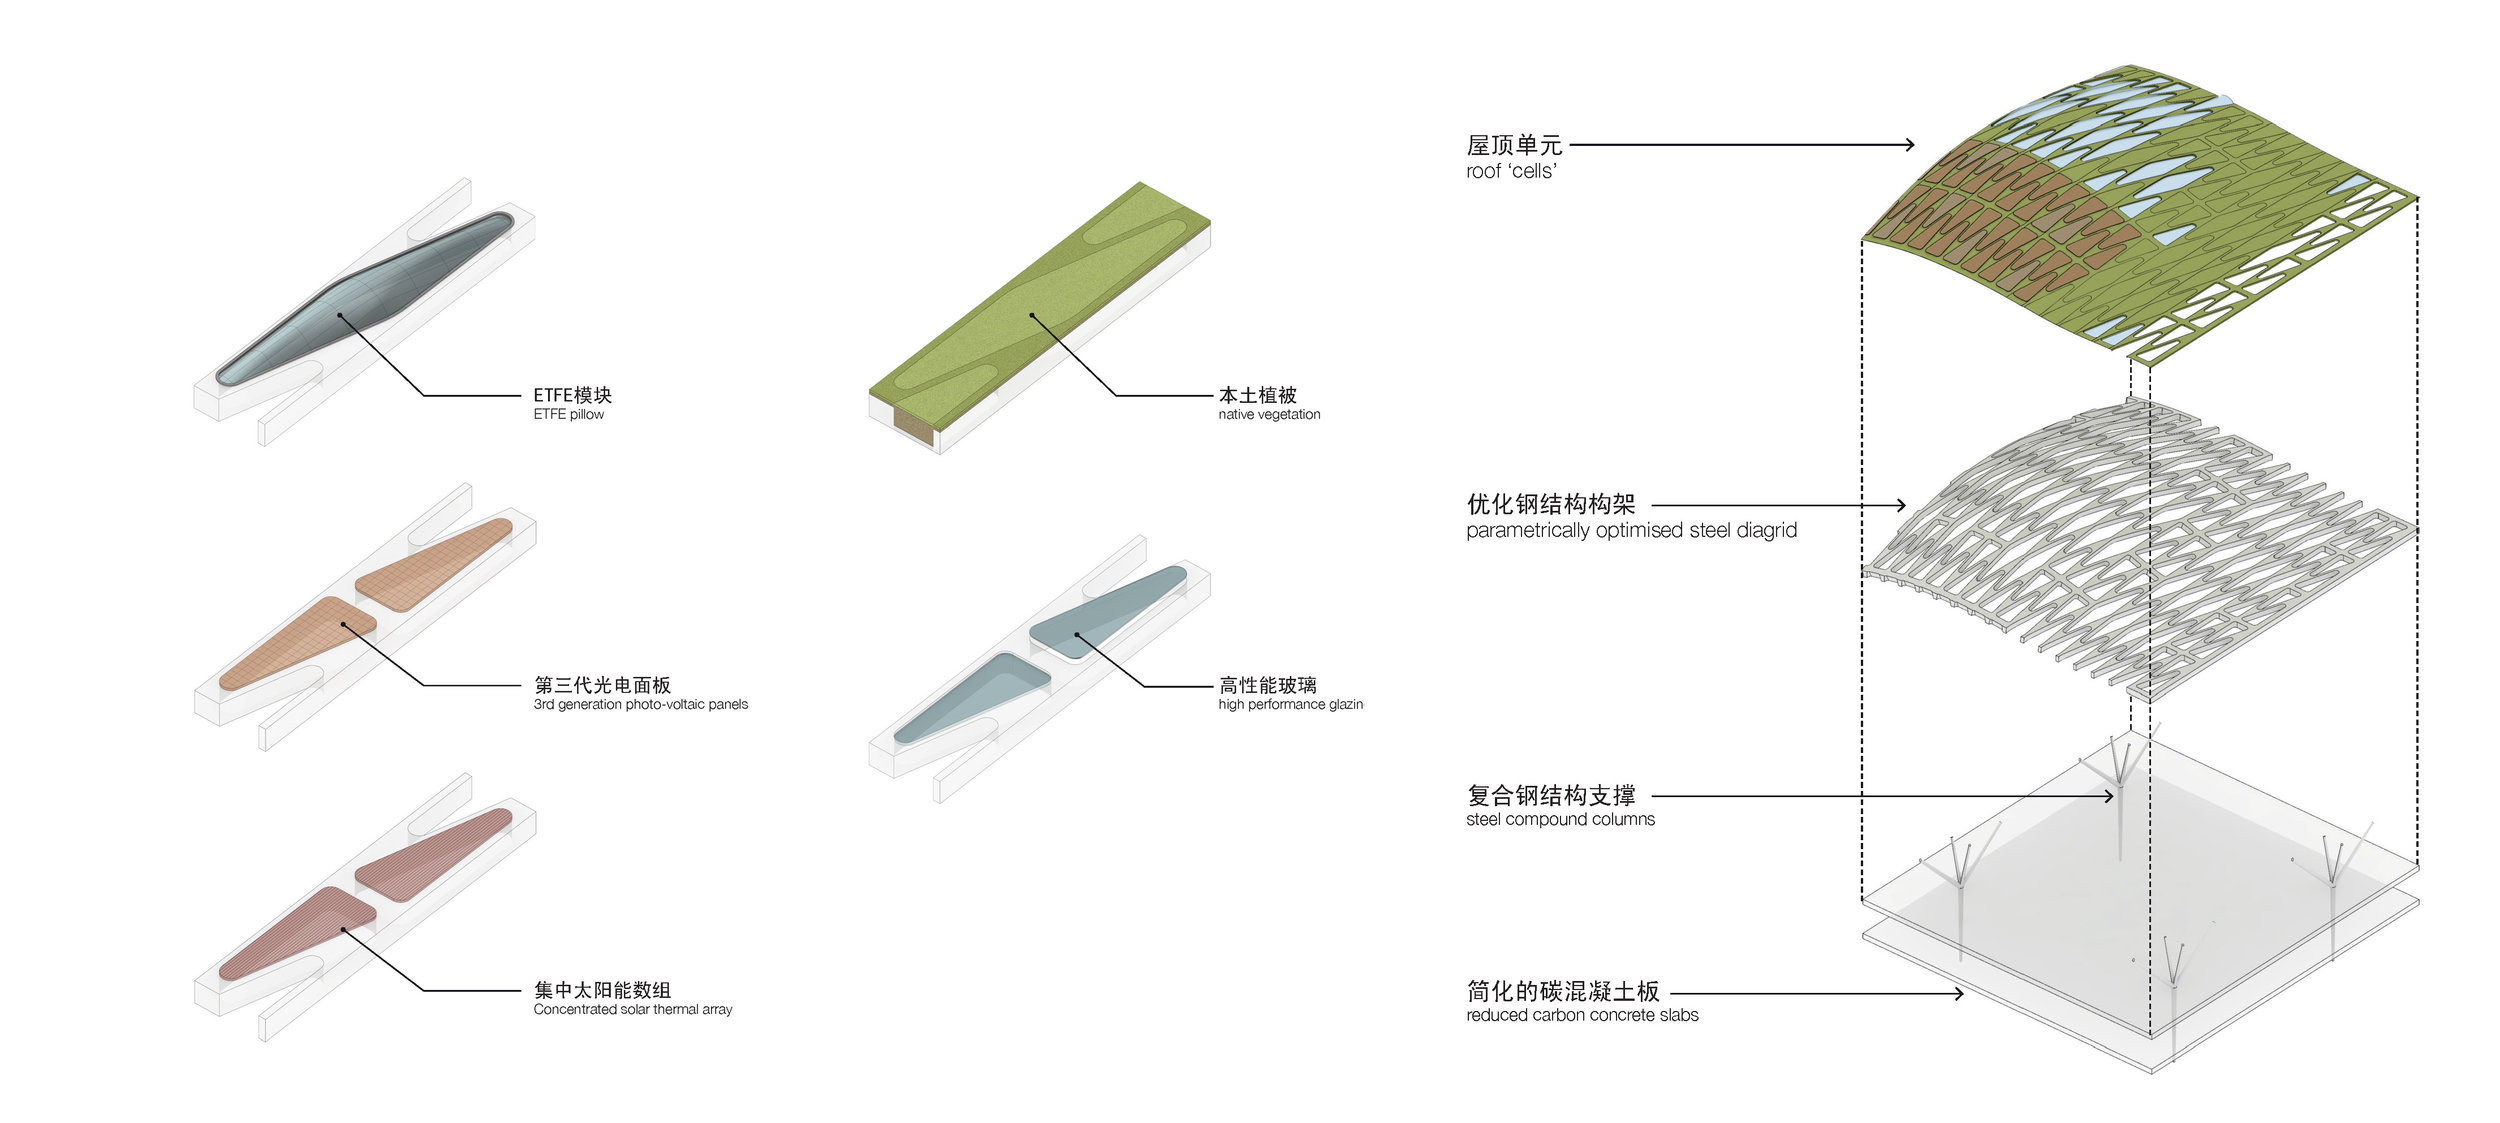 Pages from Dalian_Booklet_Print_Page_CROP_COMP (2017_09_28 21_07_46 UTC).jpg